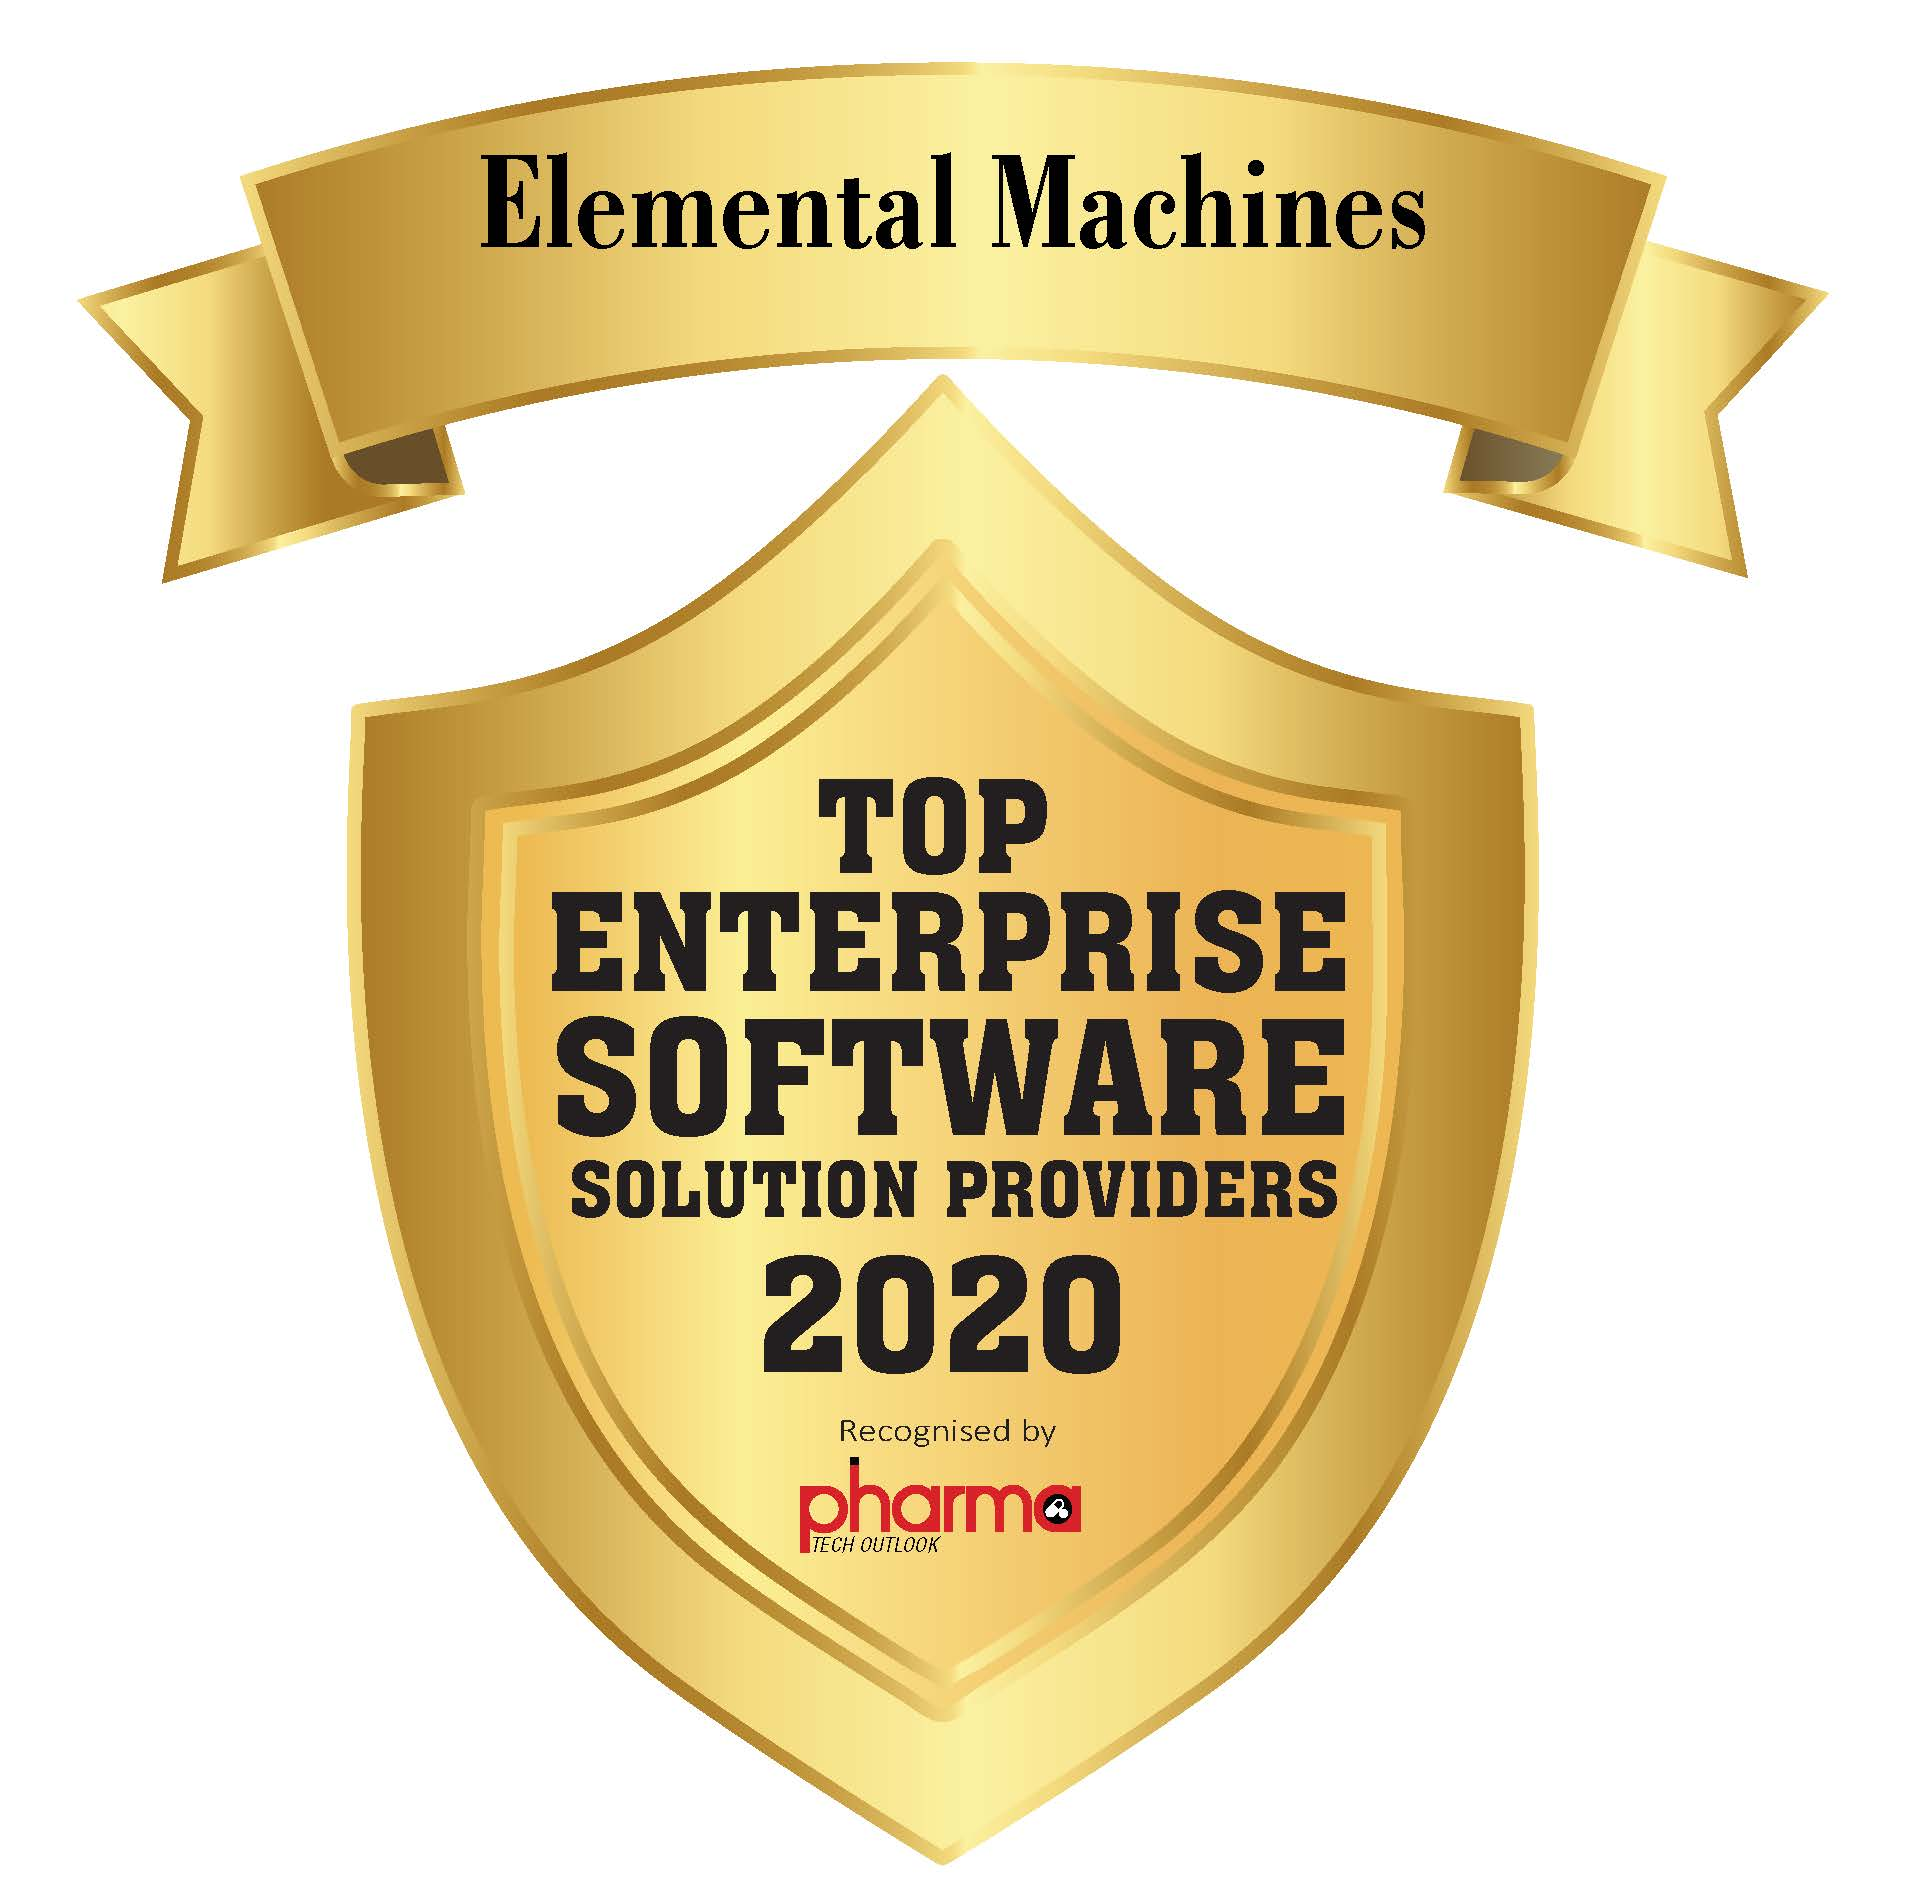 Elemental Machines Selected As Top 10 Enterprise Software Solutions Provider for 2020